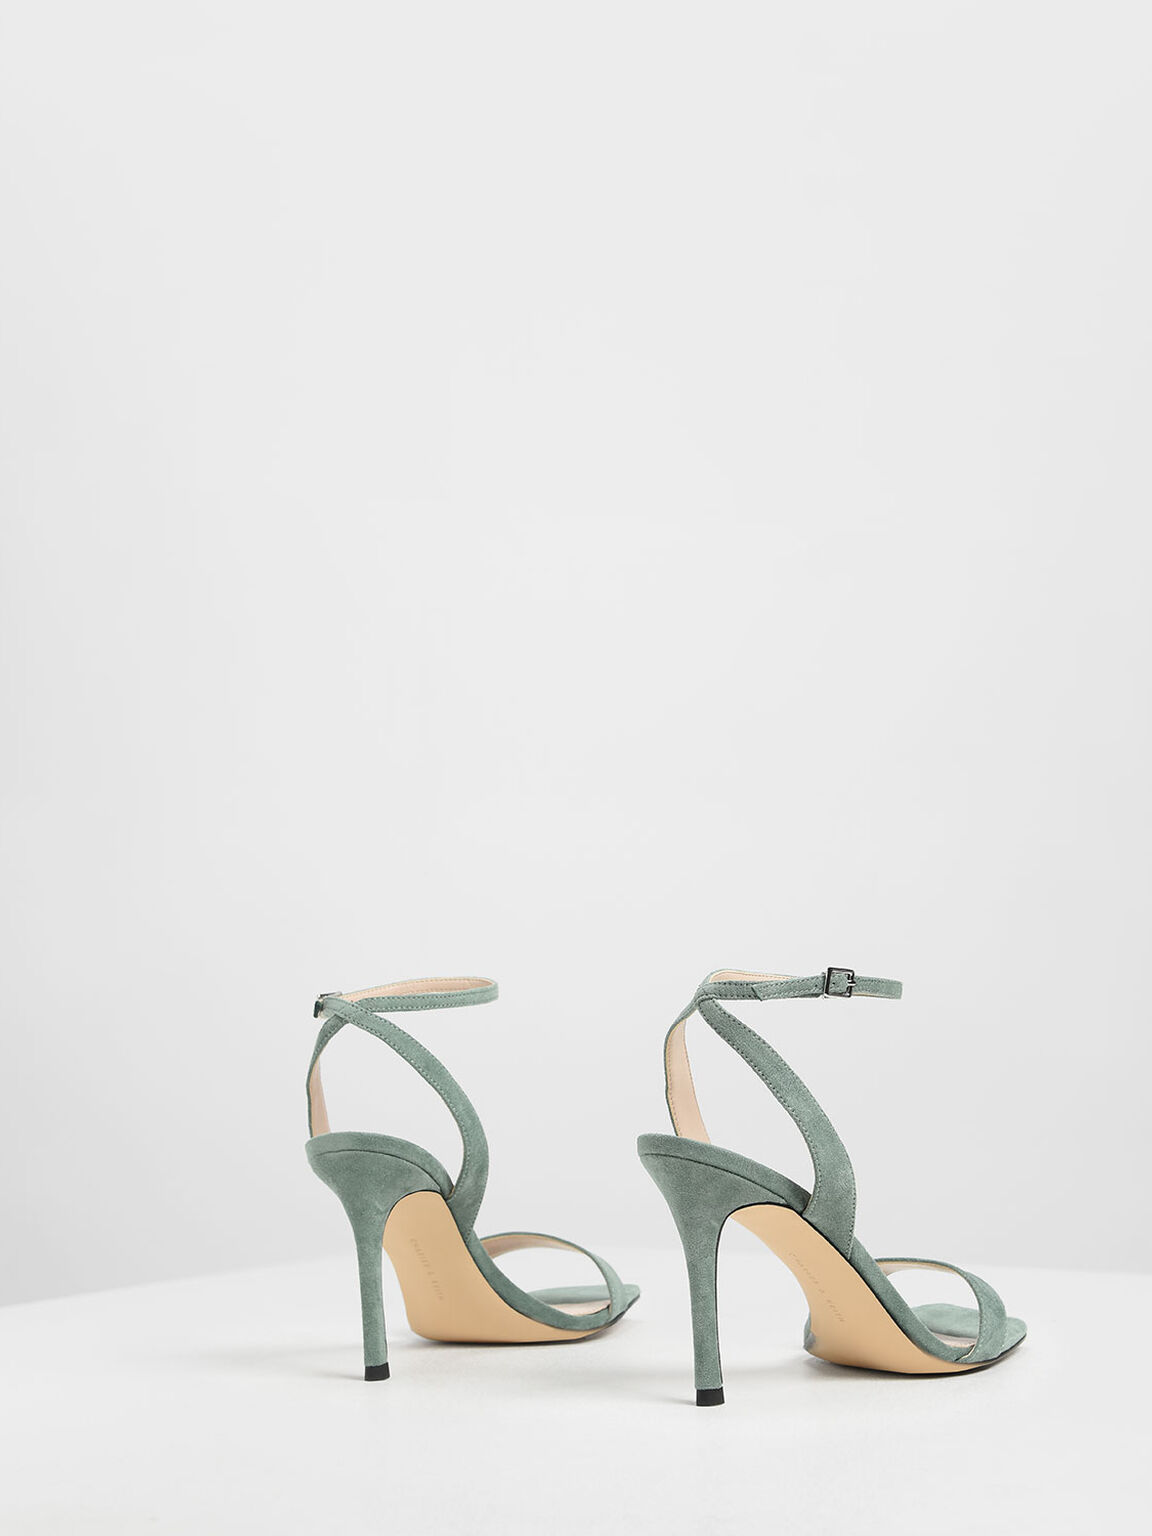 Open Toe Ankle Strap Stiletto Sandals, Mint Green, hi-res